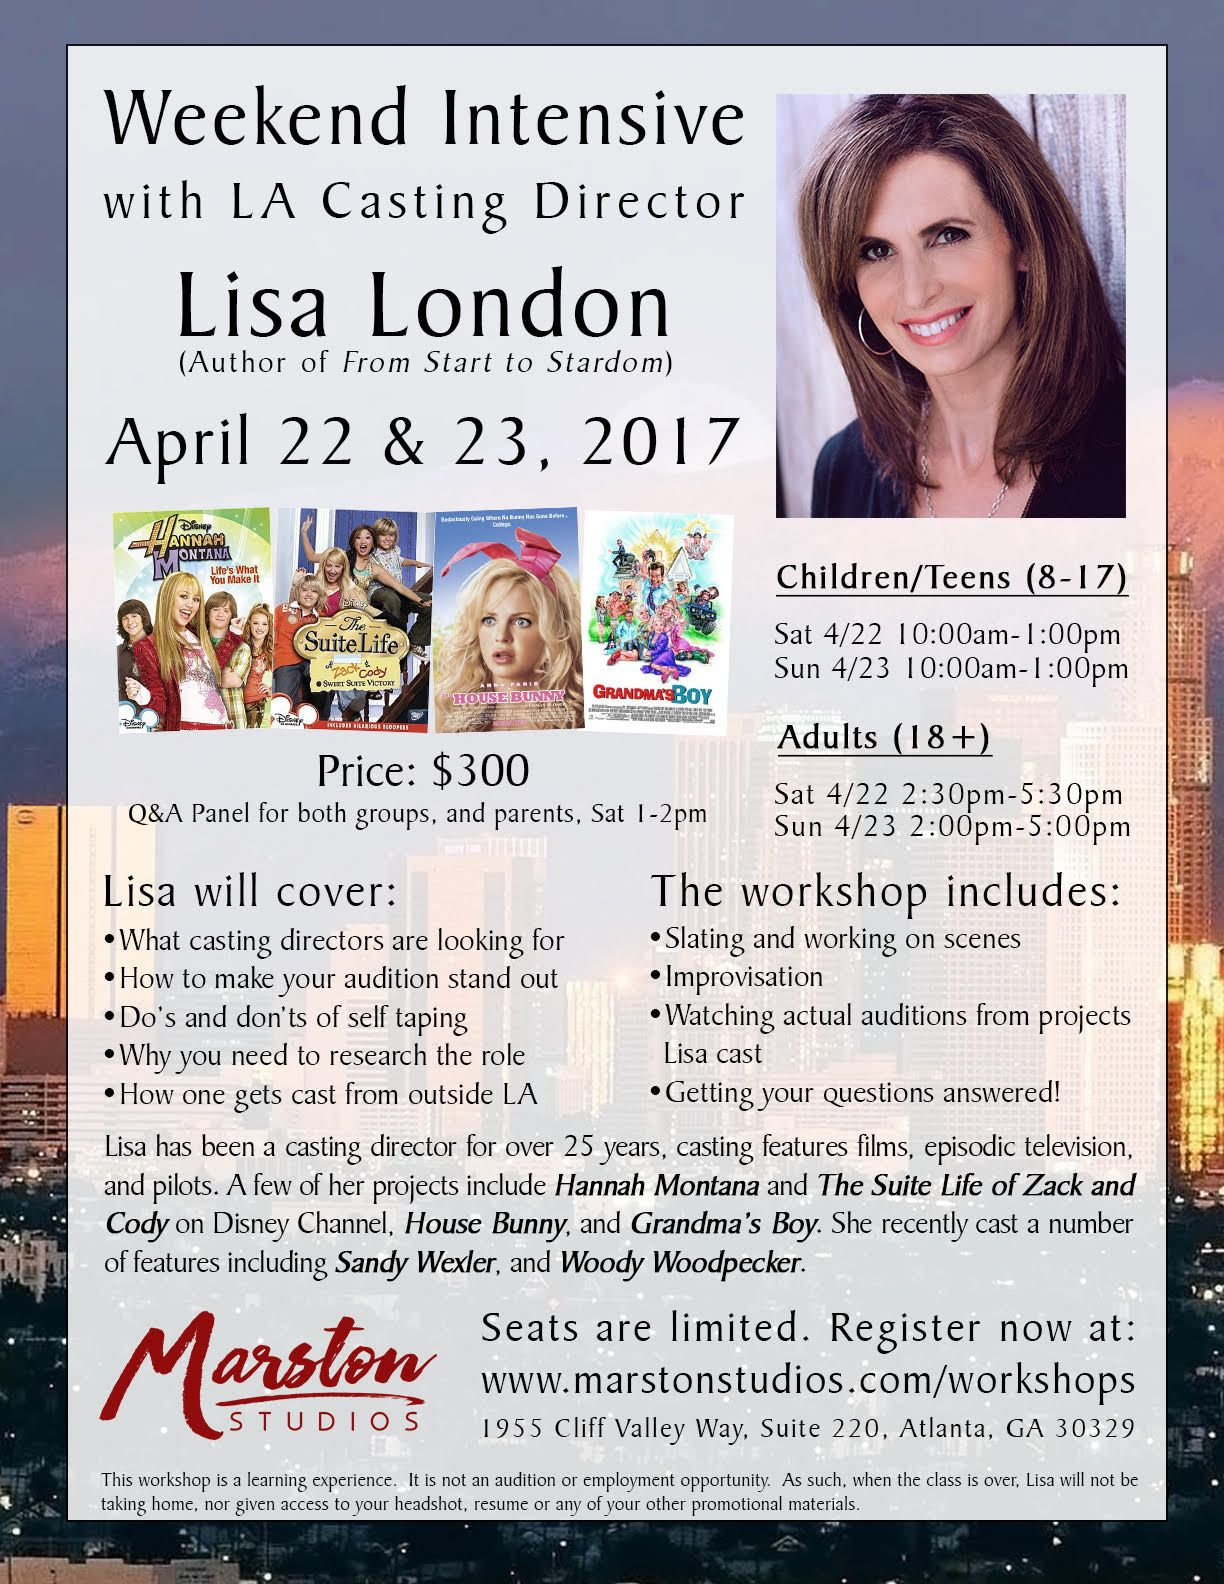 ~ A message from Casting Director, Lisa London ~  To Skits Kids and Families:  I am excited to be coming to Atlanta for a weekend intensive on April 22nd and 23rd.I have been a casting director for over 25 years and I am very passionate aboutsharing my knowledge with you all. I really enjoy helping actors and giving theminside tips about the business of acting.  Look forward to meeting you.  To register:www.marstonstudios.com/workshops  All the best, Lisa   LISA LONDON…